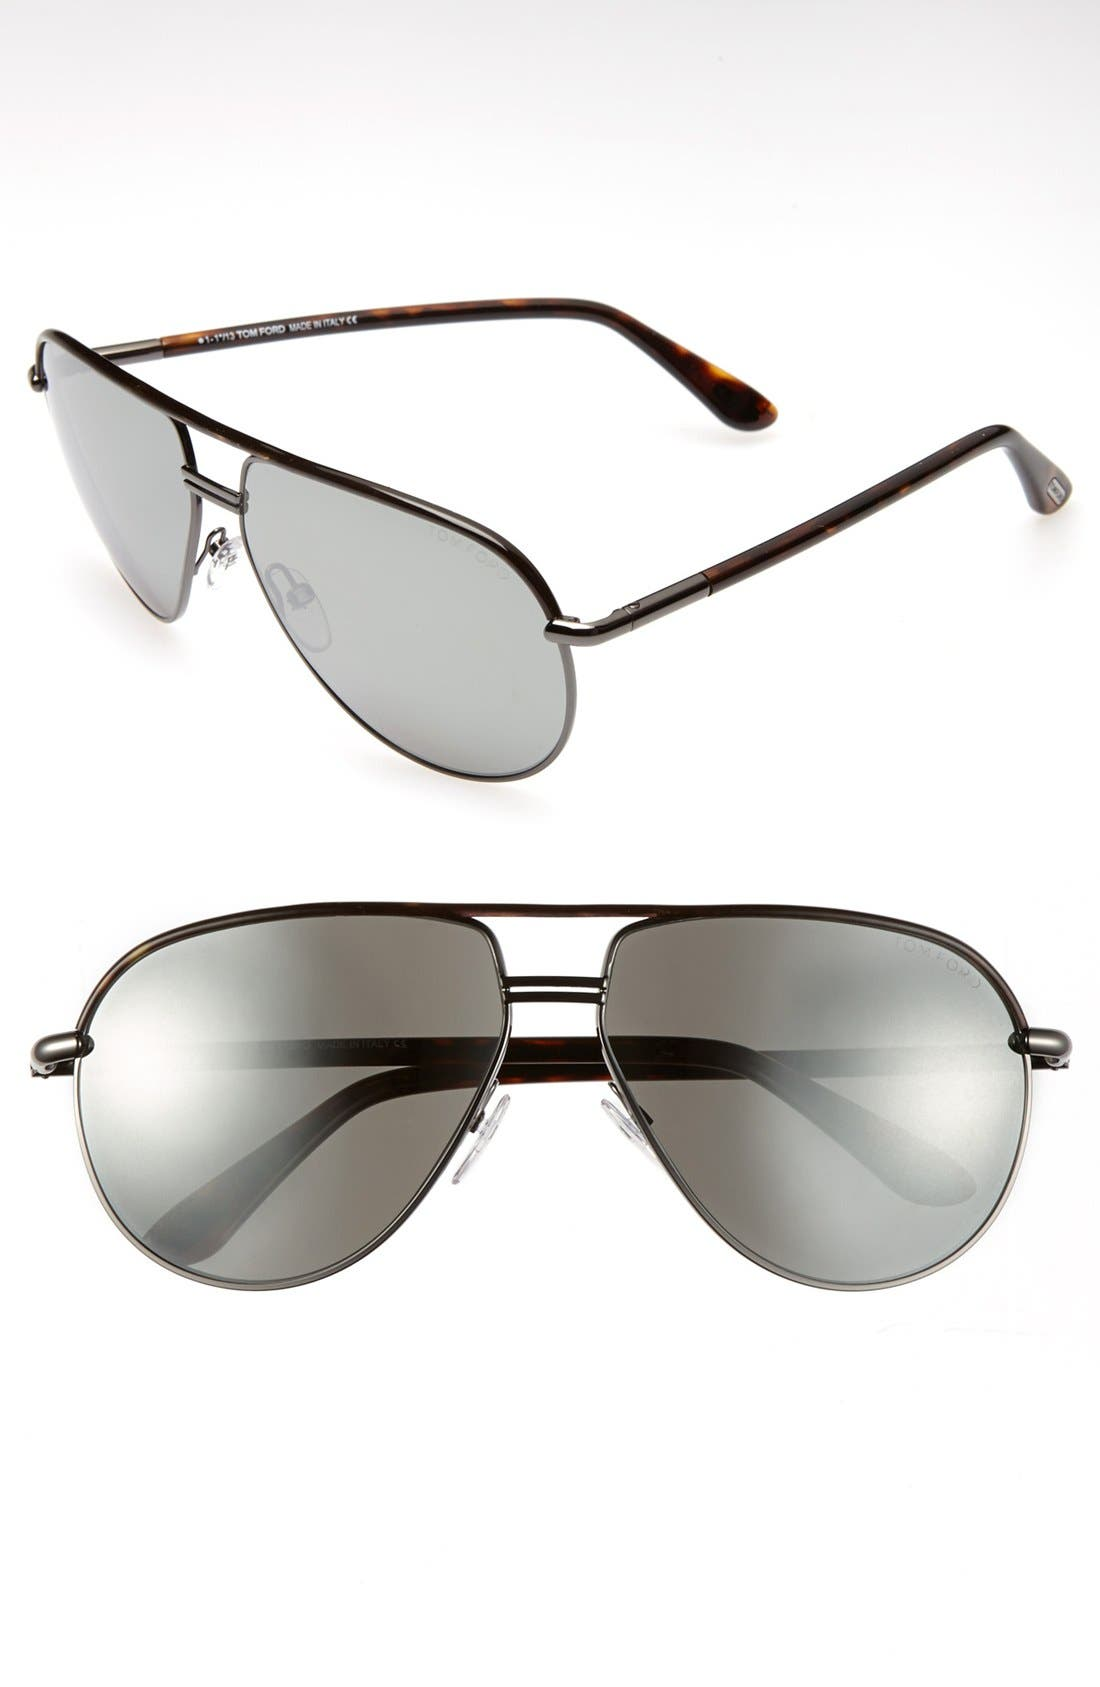 Alternate Image 1 Selected - Tom Ford Cole 61mm Sunglasses